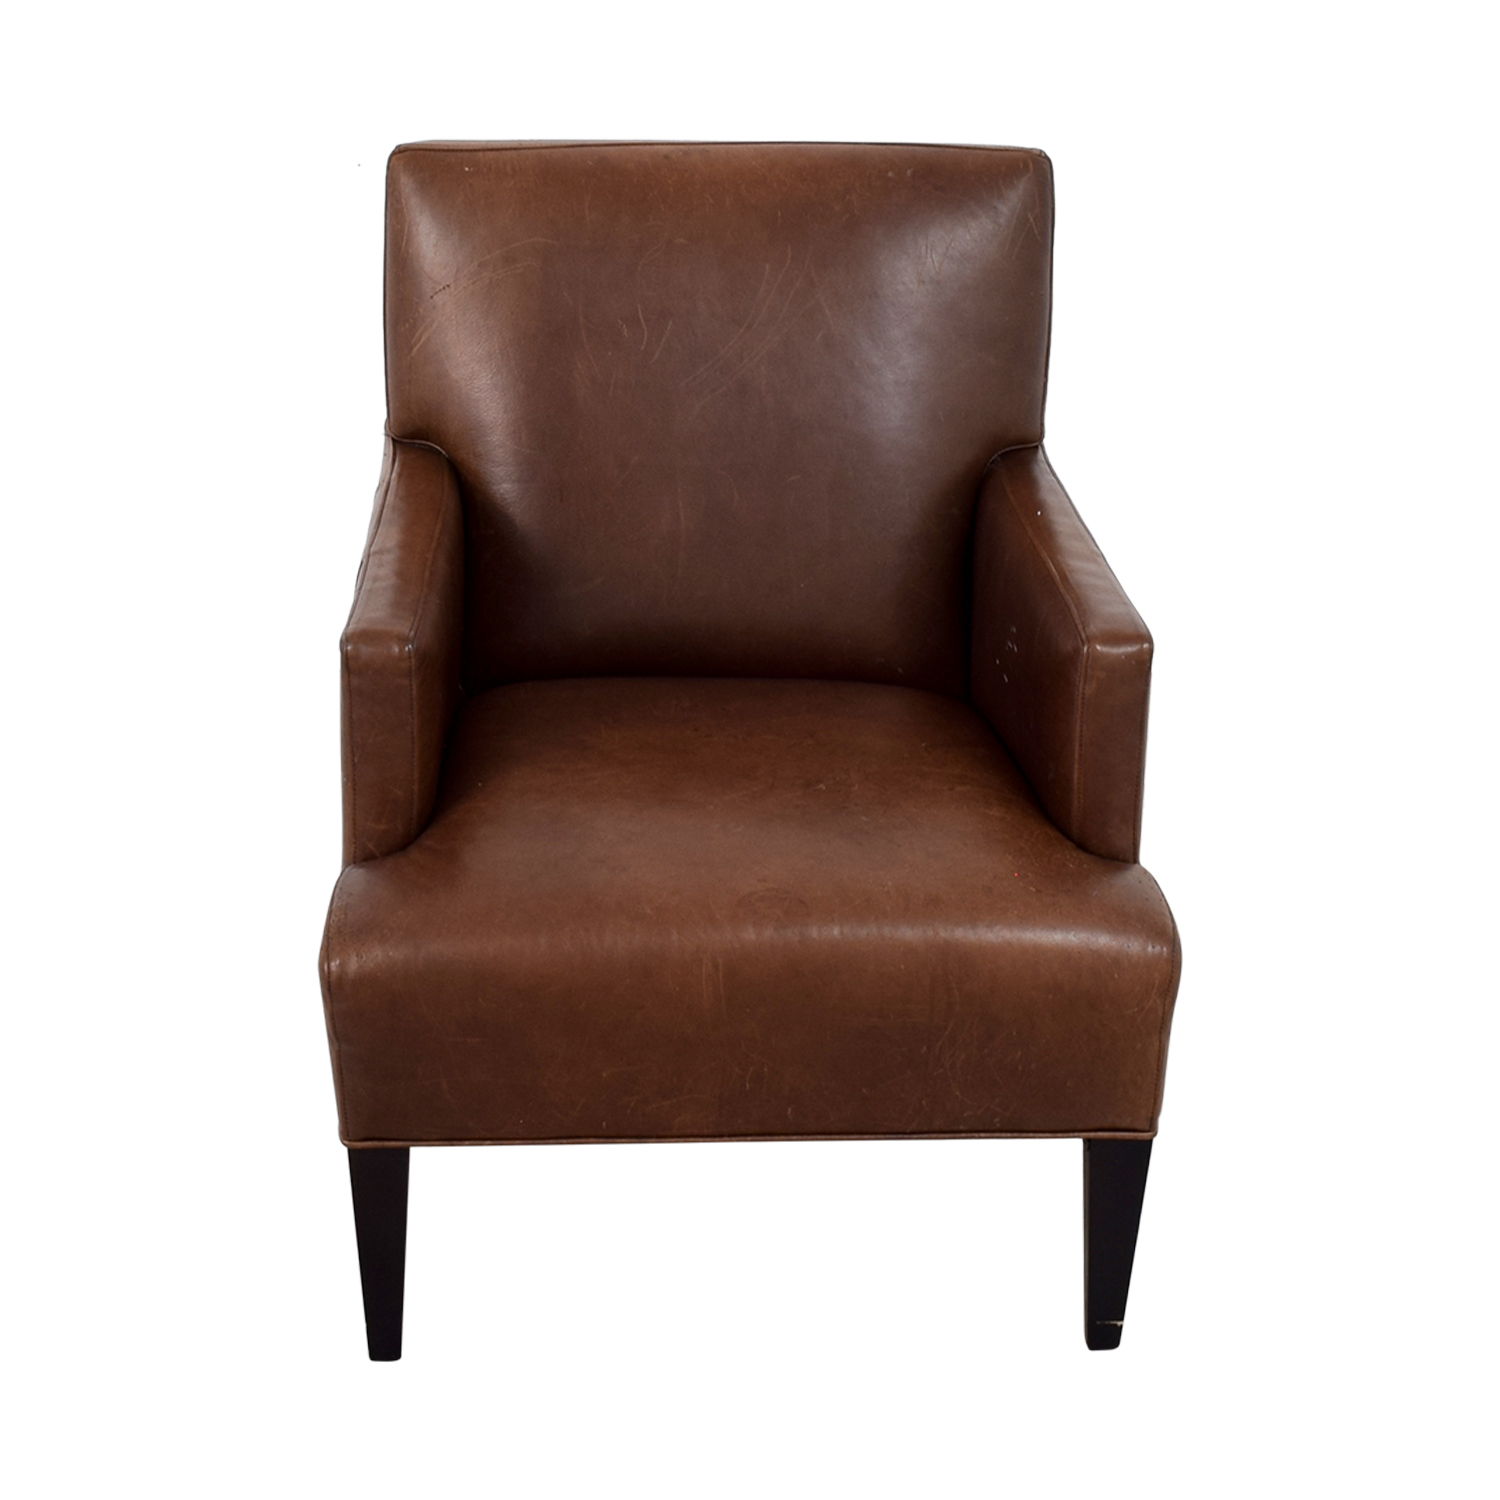 shop Crate & Barrel Brown Leather Arm Chair Crate & Barrel Accent Chairs